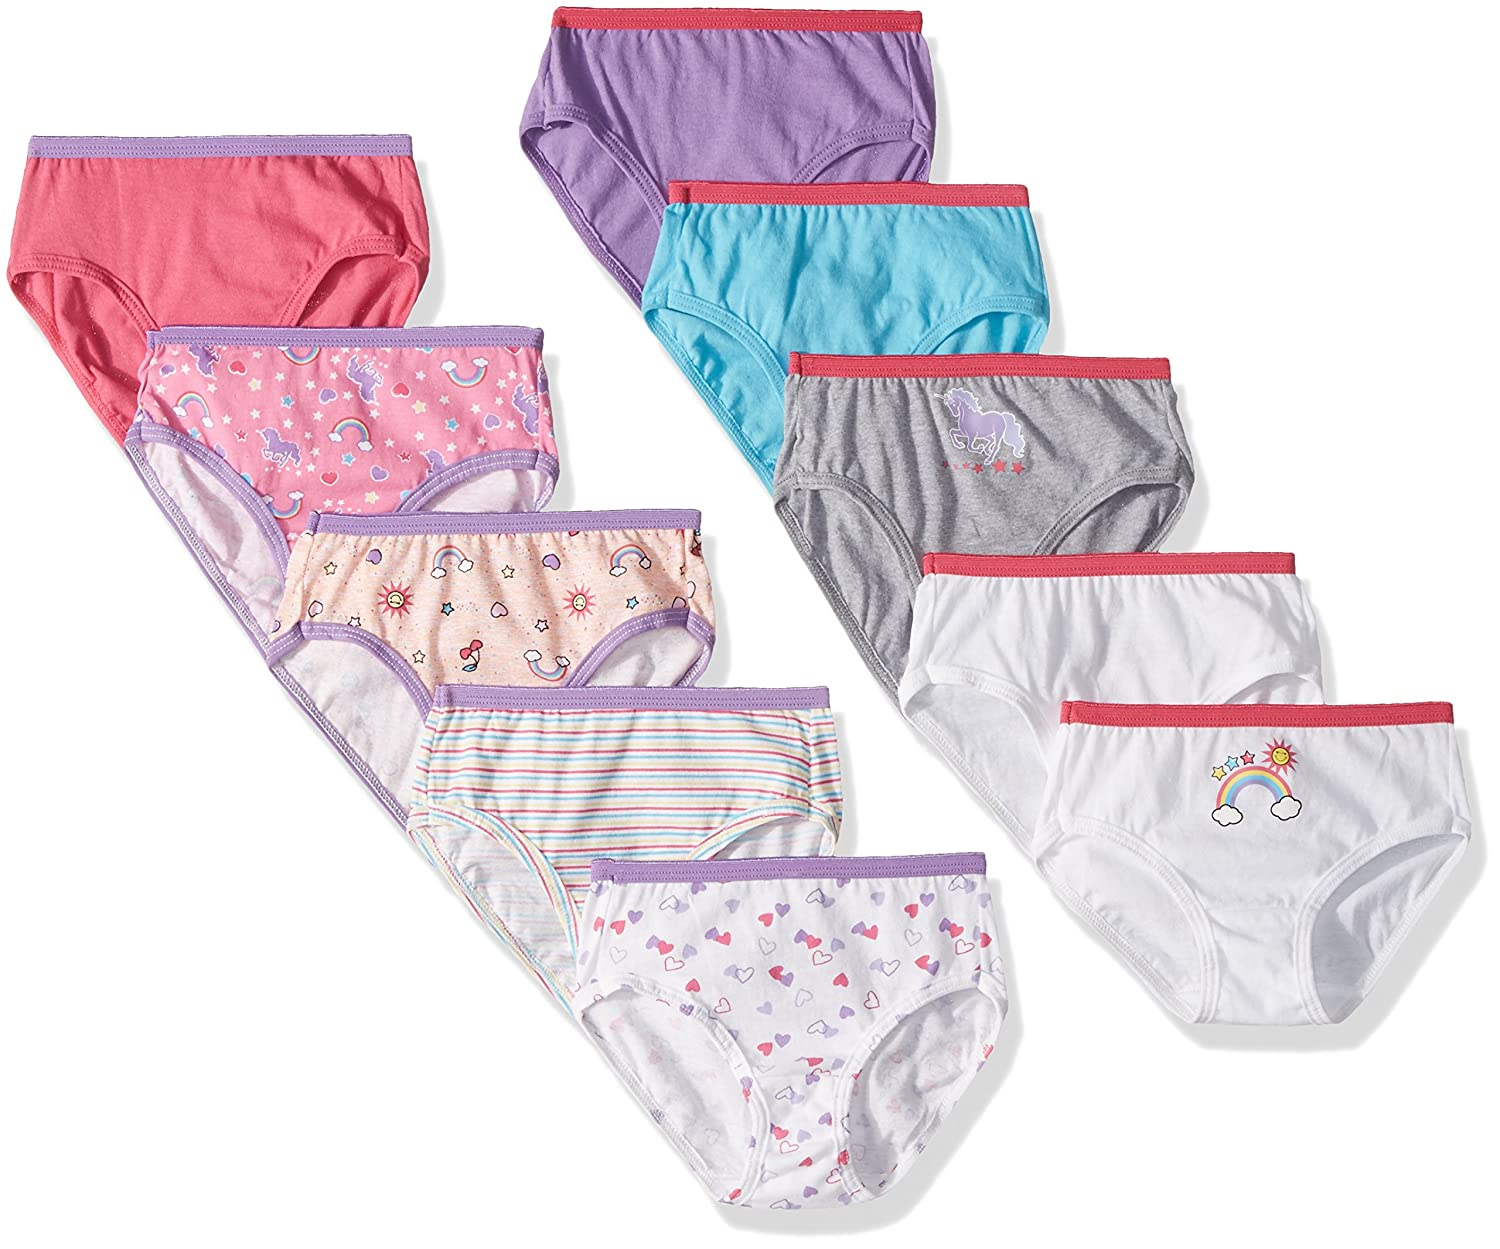 Assorted Hanes Girls Brief Multipack